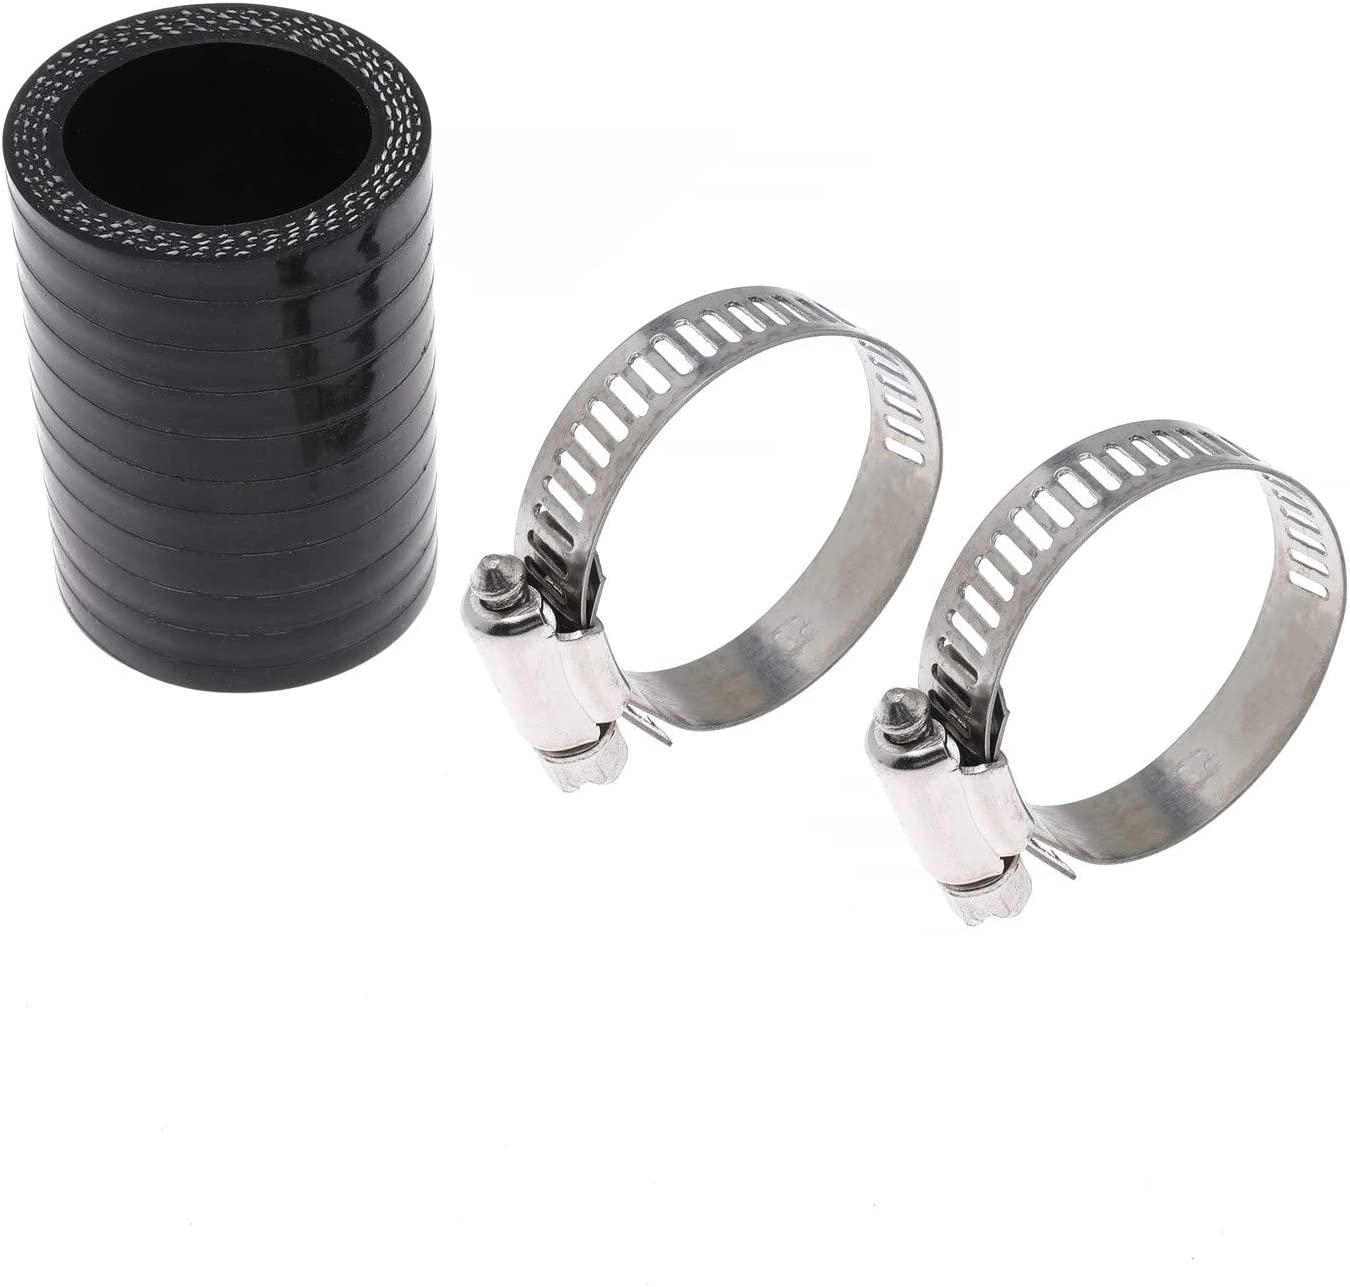 ROOSAIN High Temp Silicone Exhaust Pipe Couplings Clamps Kit Fits for Yamaha Blaster ATV 1987-2006 Replaces YFS200